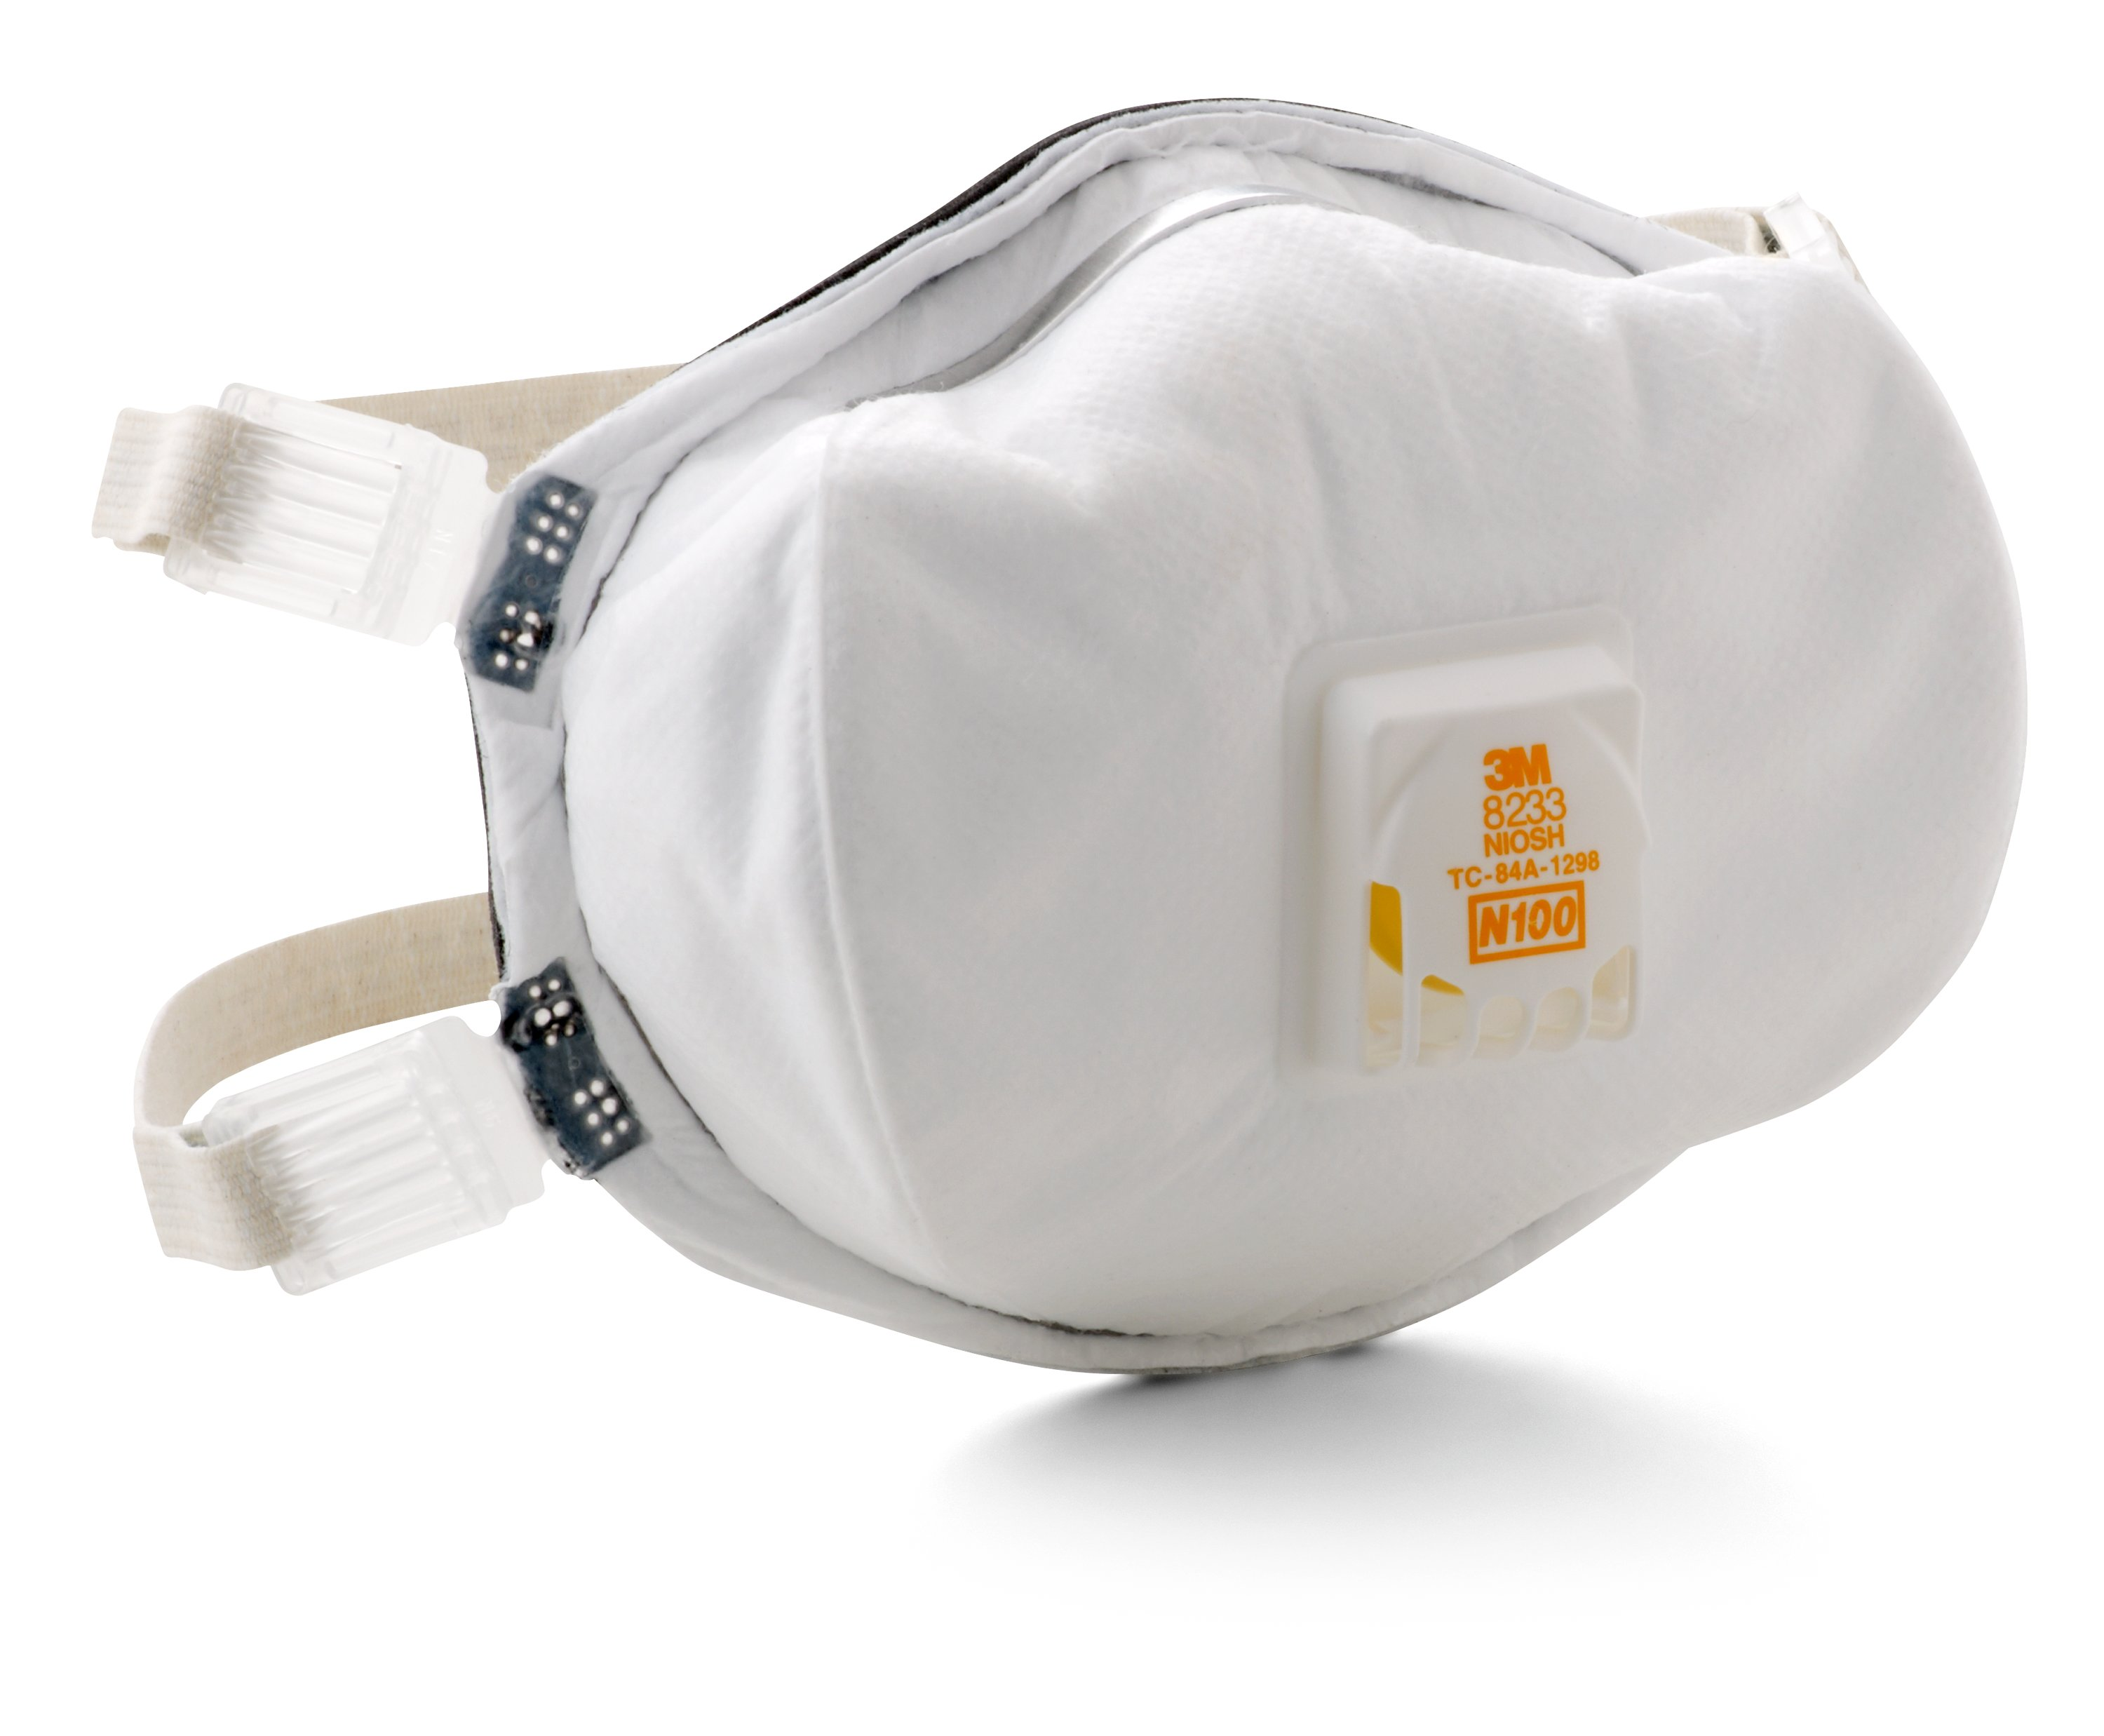 3M™ 8212 Standard Particulate Respirator With Faceseal, Resists: Non-Oil Based Particles